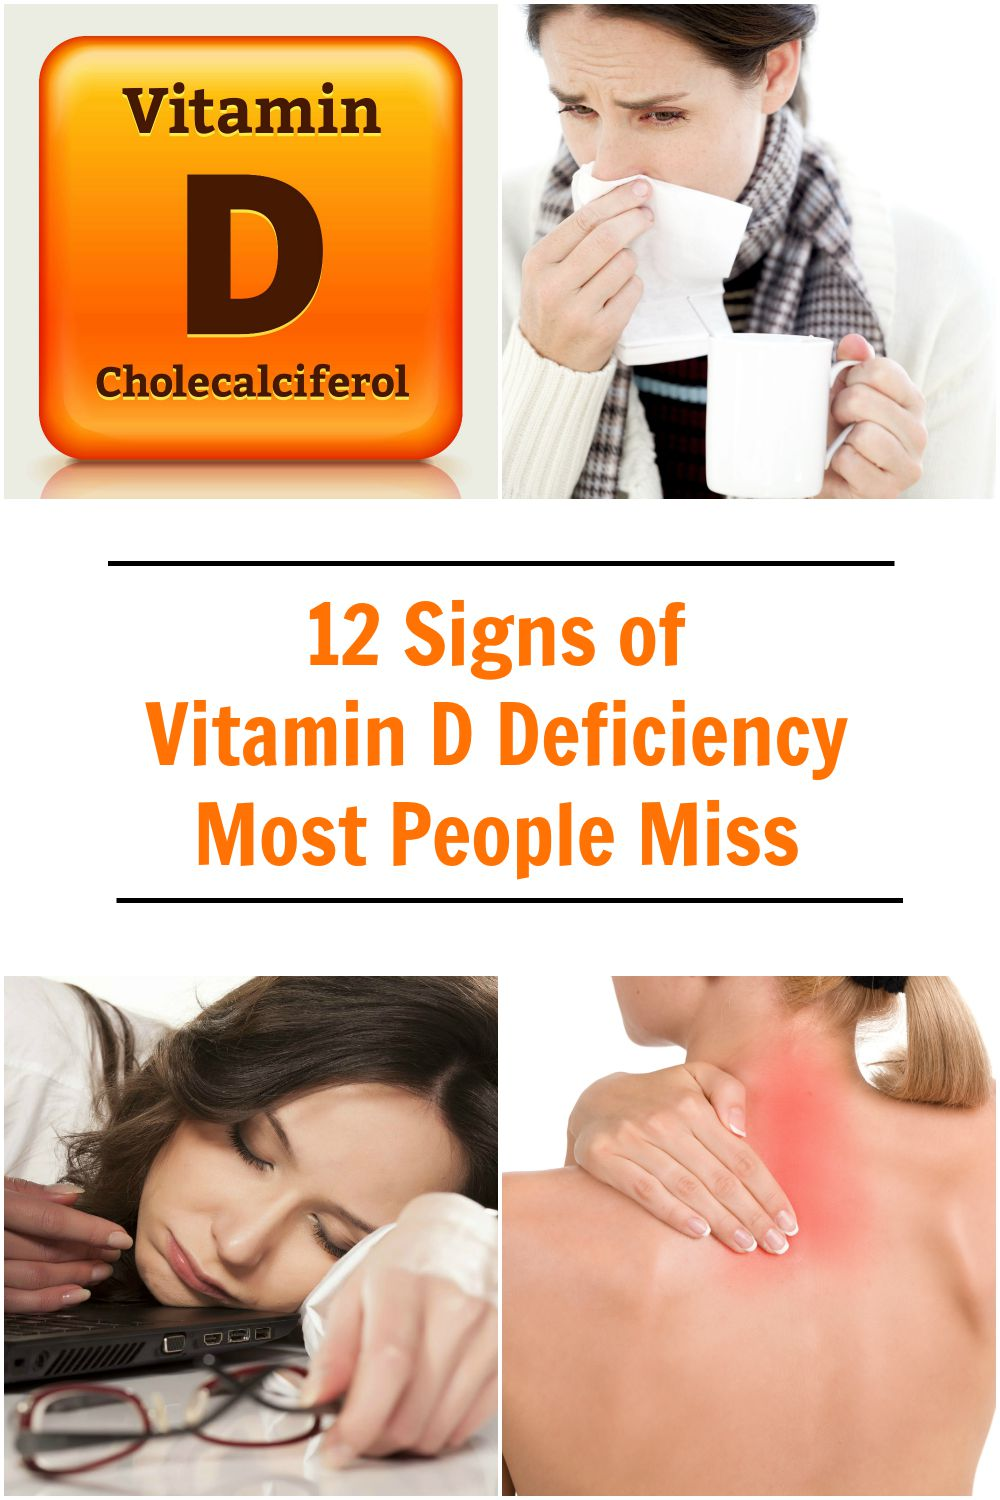 Signs of Vitamin D Deficiency Most People Miss